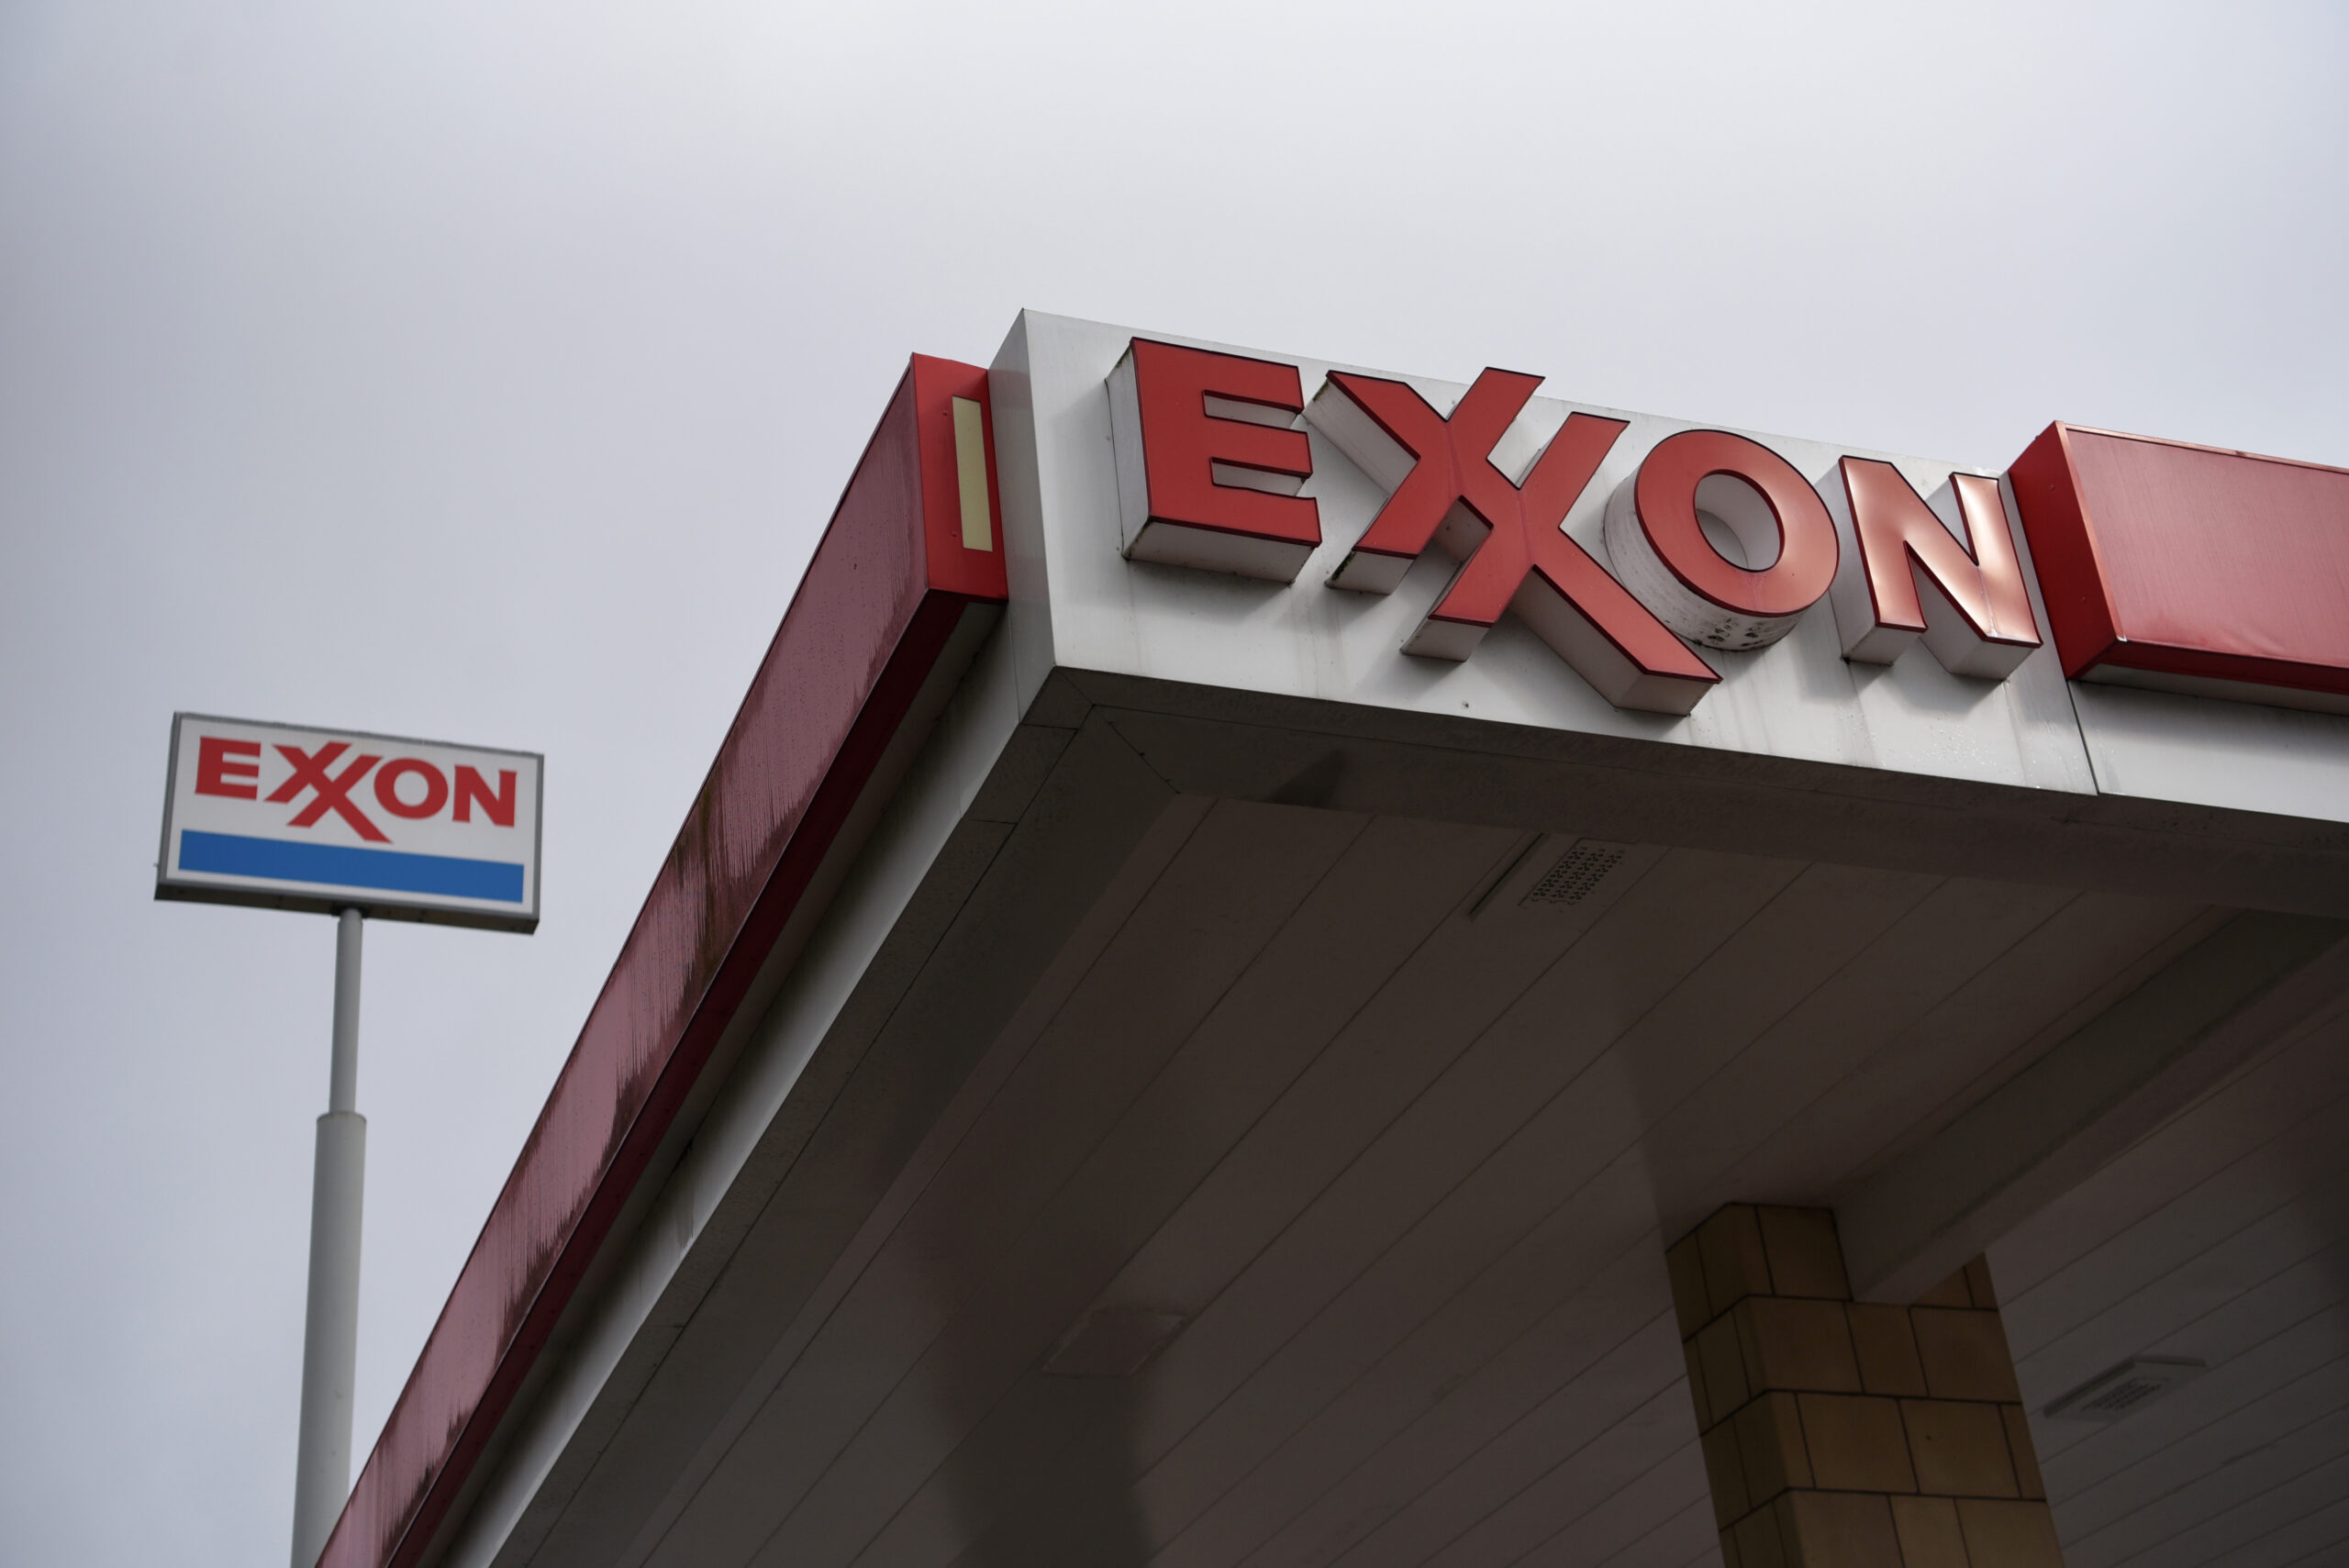 Signage at an ExxonMobil gas station in Houston, Texas, on Wednesday, Oct. 28, 2020. Credit: Callaghan O'Hare/Bloomberg via Getty Images